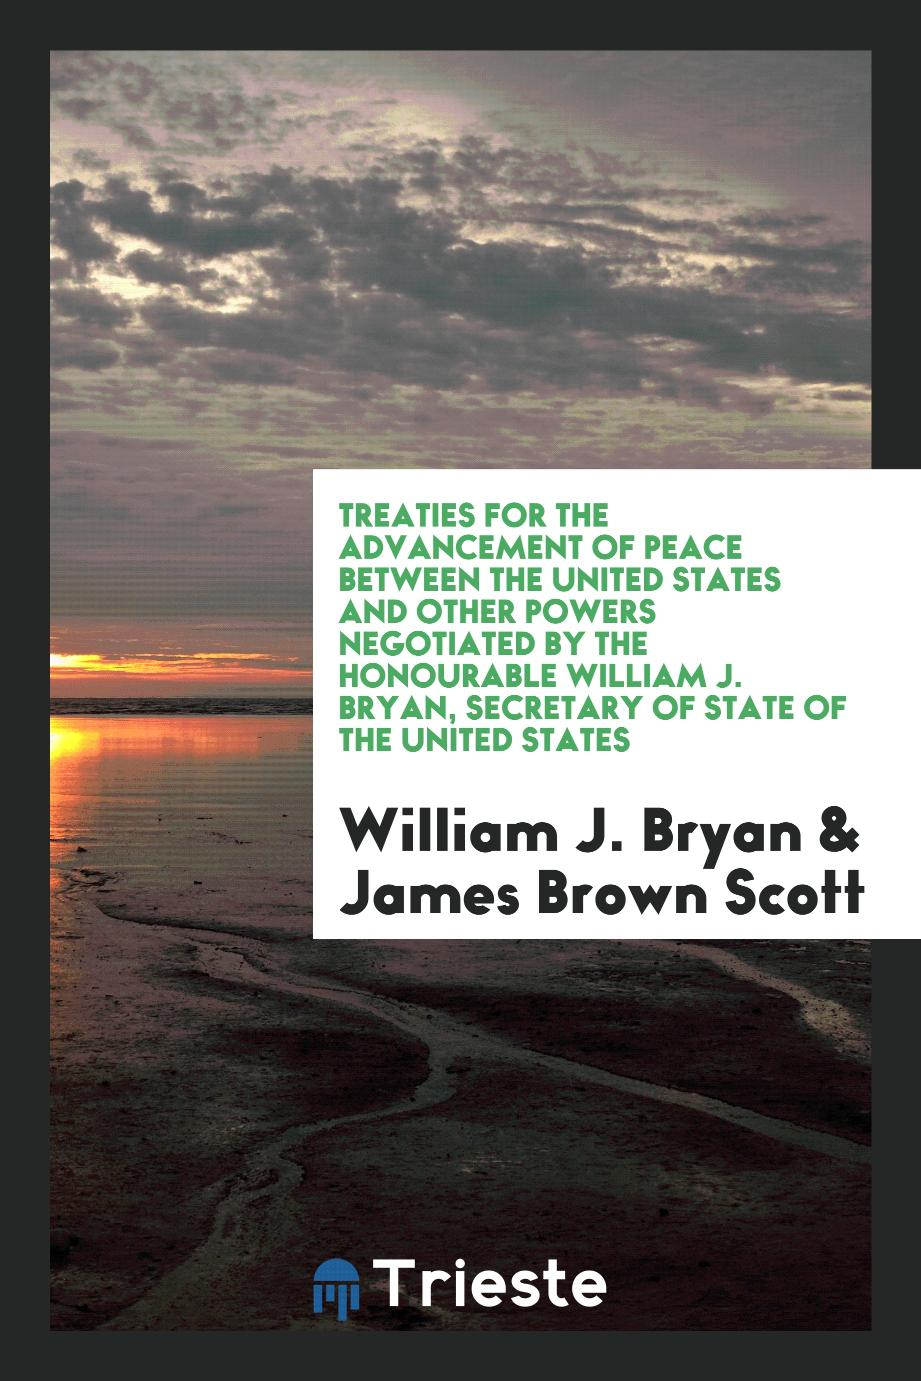 Treaties for the advancement of peace between the United States and other powers negotiated by the Honourable William J. Bryan, Secretary of state of the United States